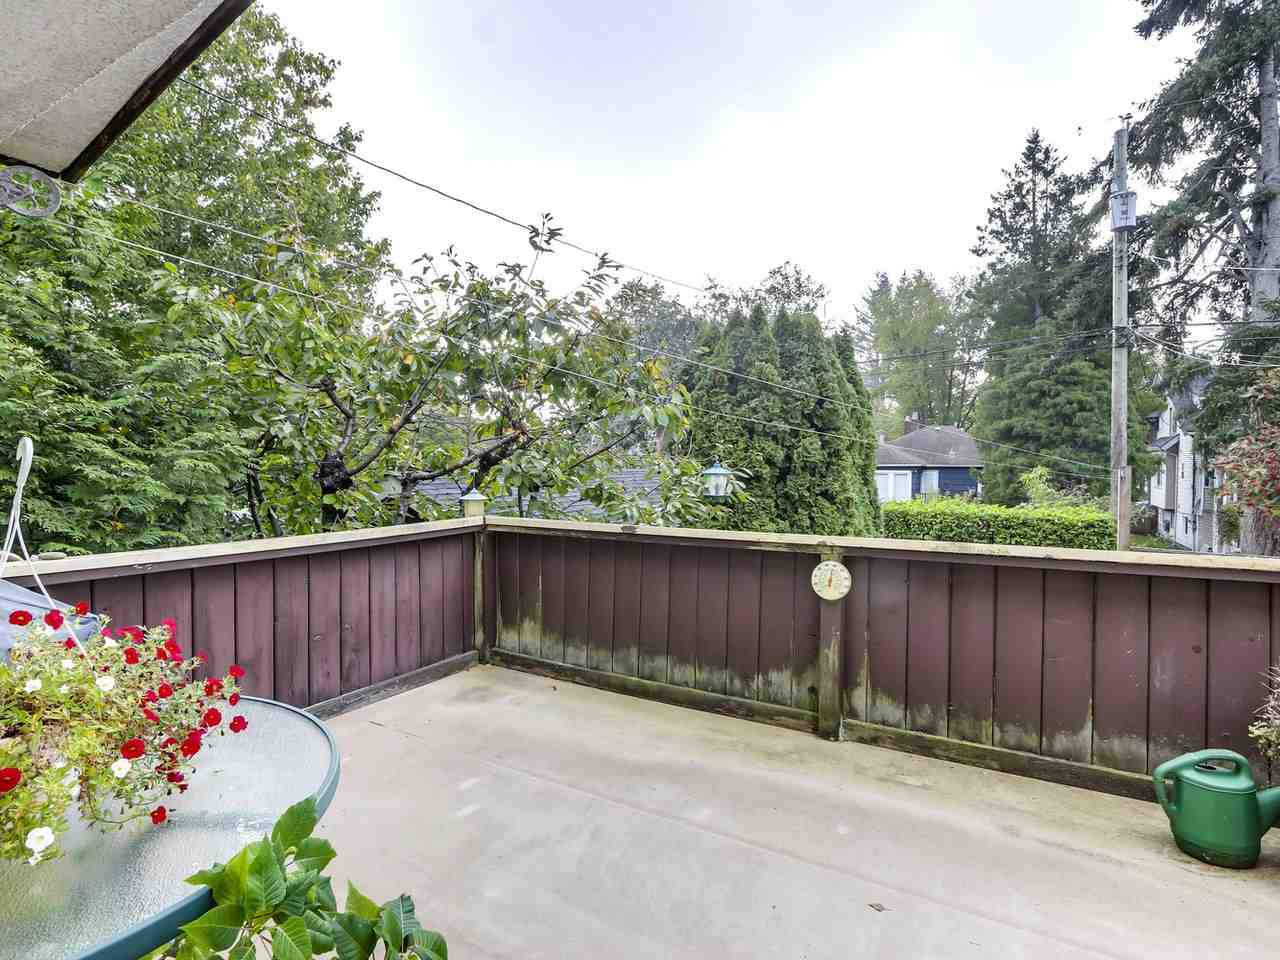 4372 W 13TH AVENUE - Point Grey House/Single Family for sale, 4 Bedrooms (R2508858) - #8